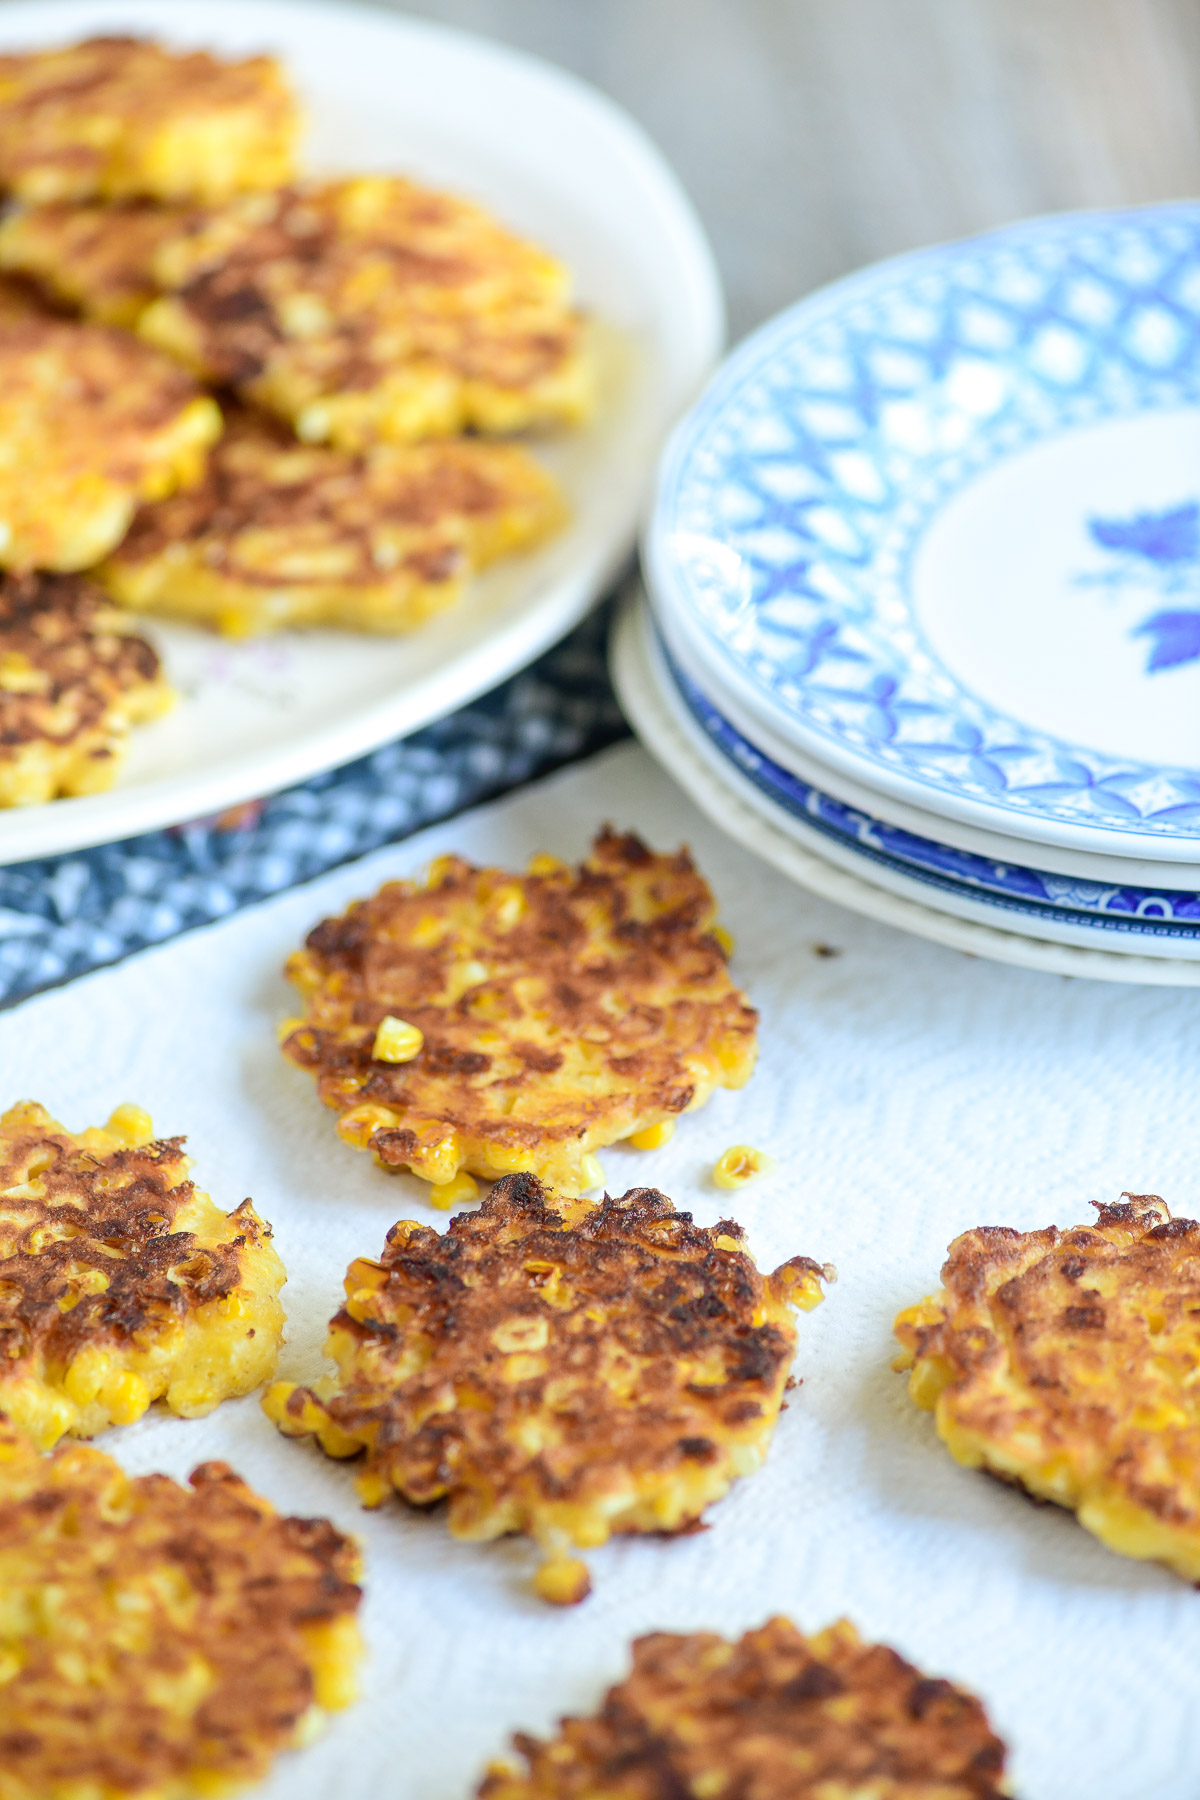 Draining sweet corn fritters on paper towlels